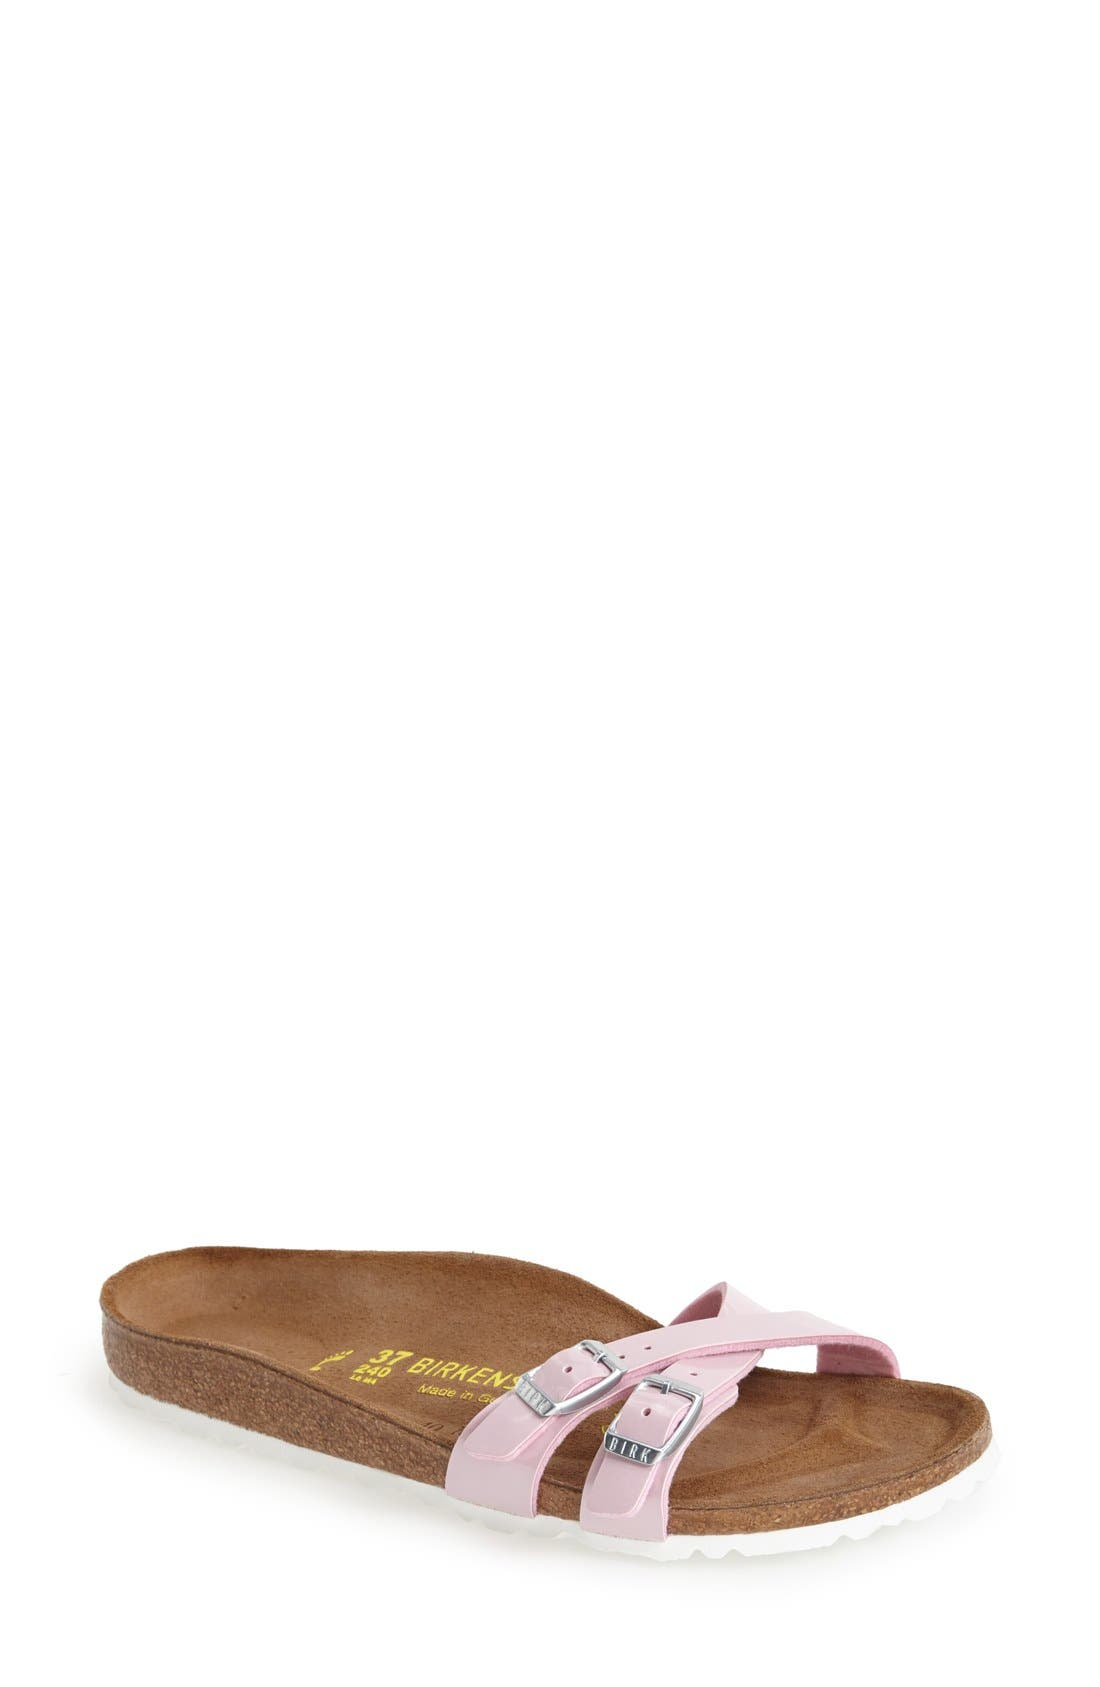 Alternate Image 1 Selected - Birkenstock 'Almere' Slide Sandal (Women)